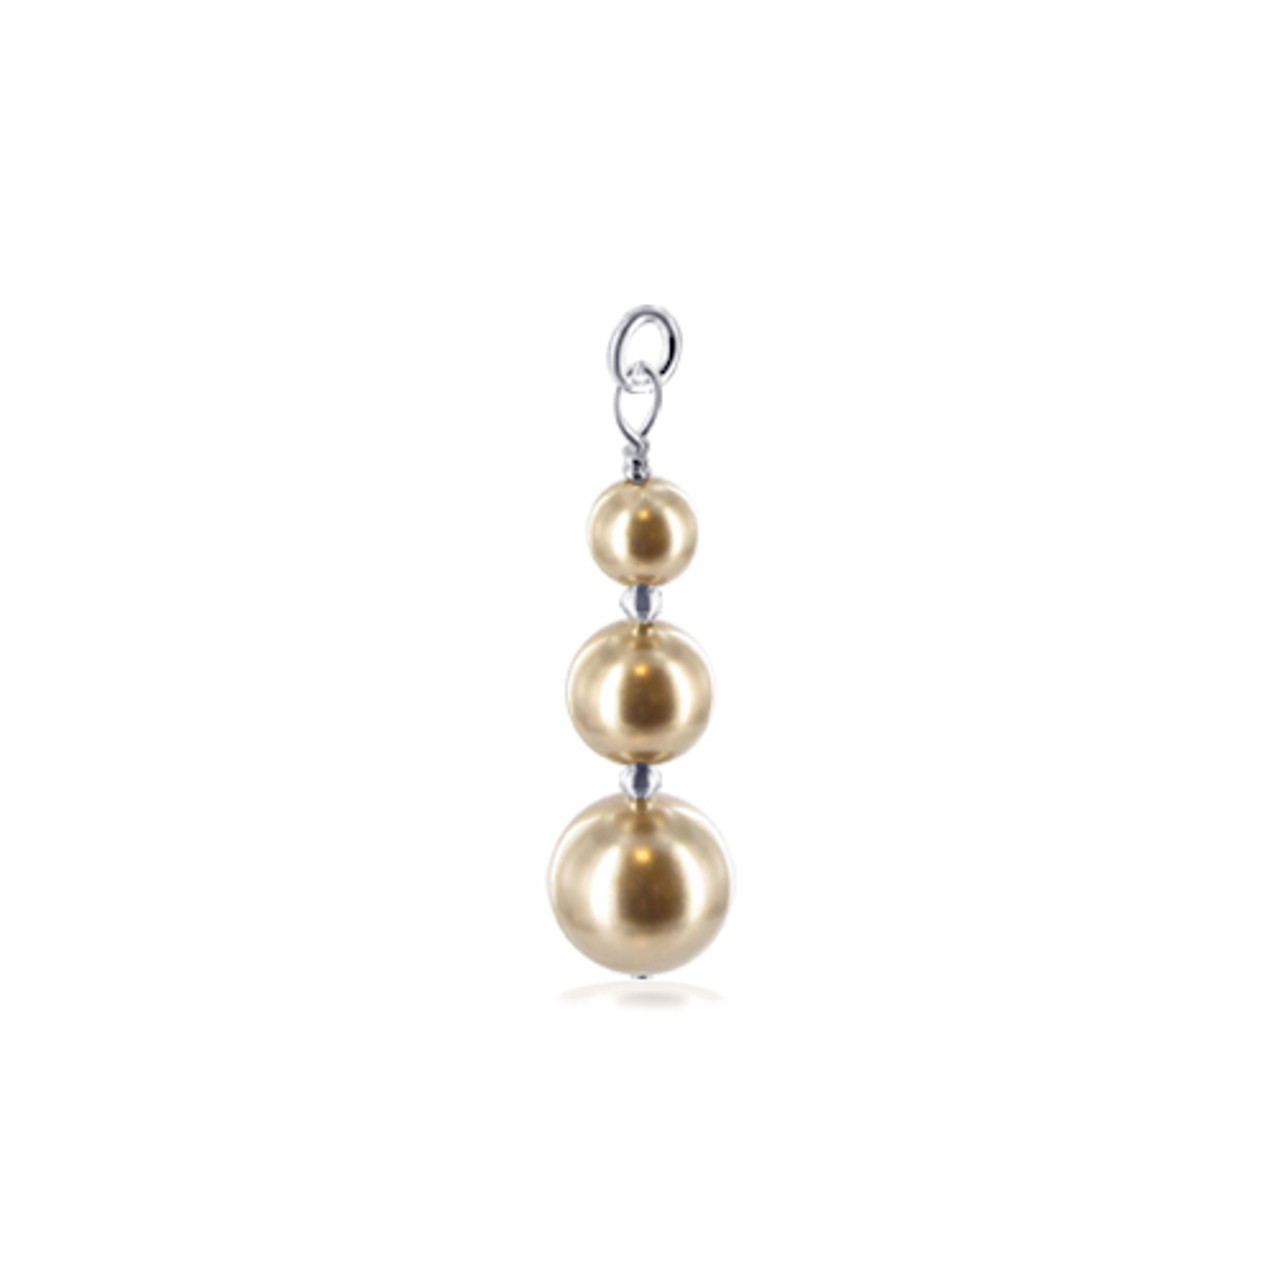 Round Brown Simulated Pearl 925 Sterling Silver Charm Pendant